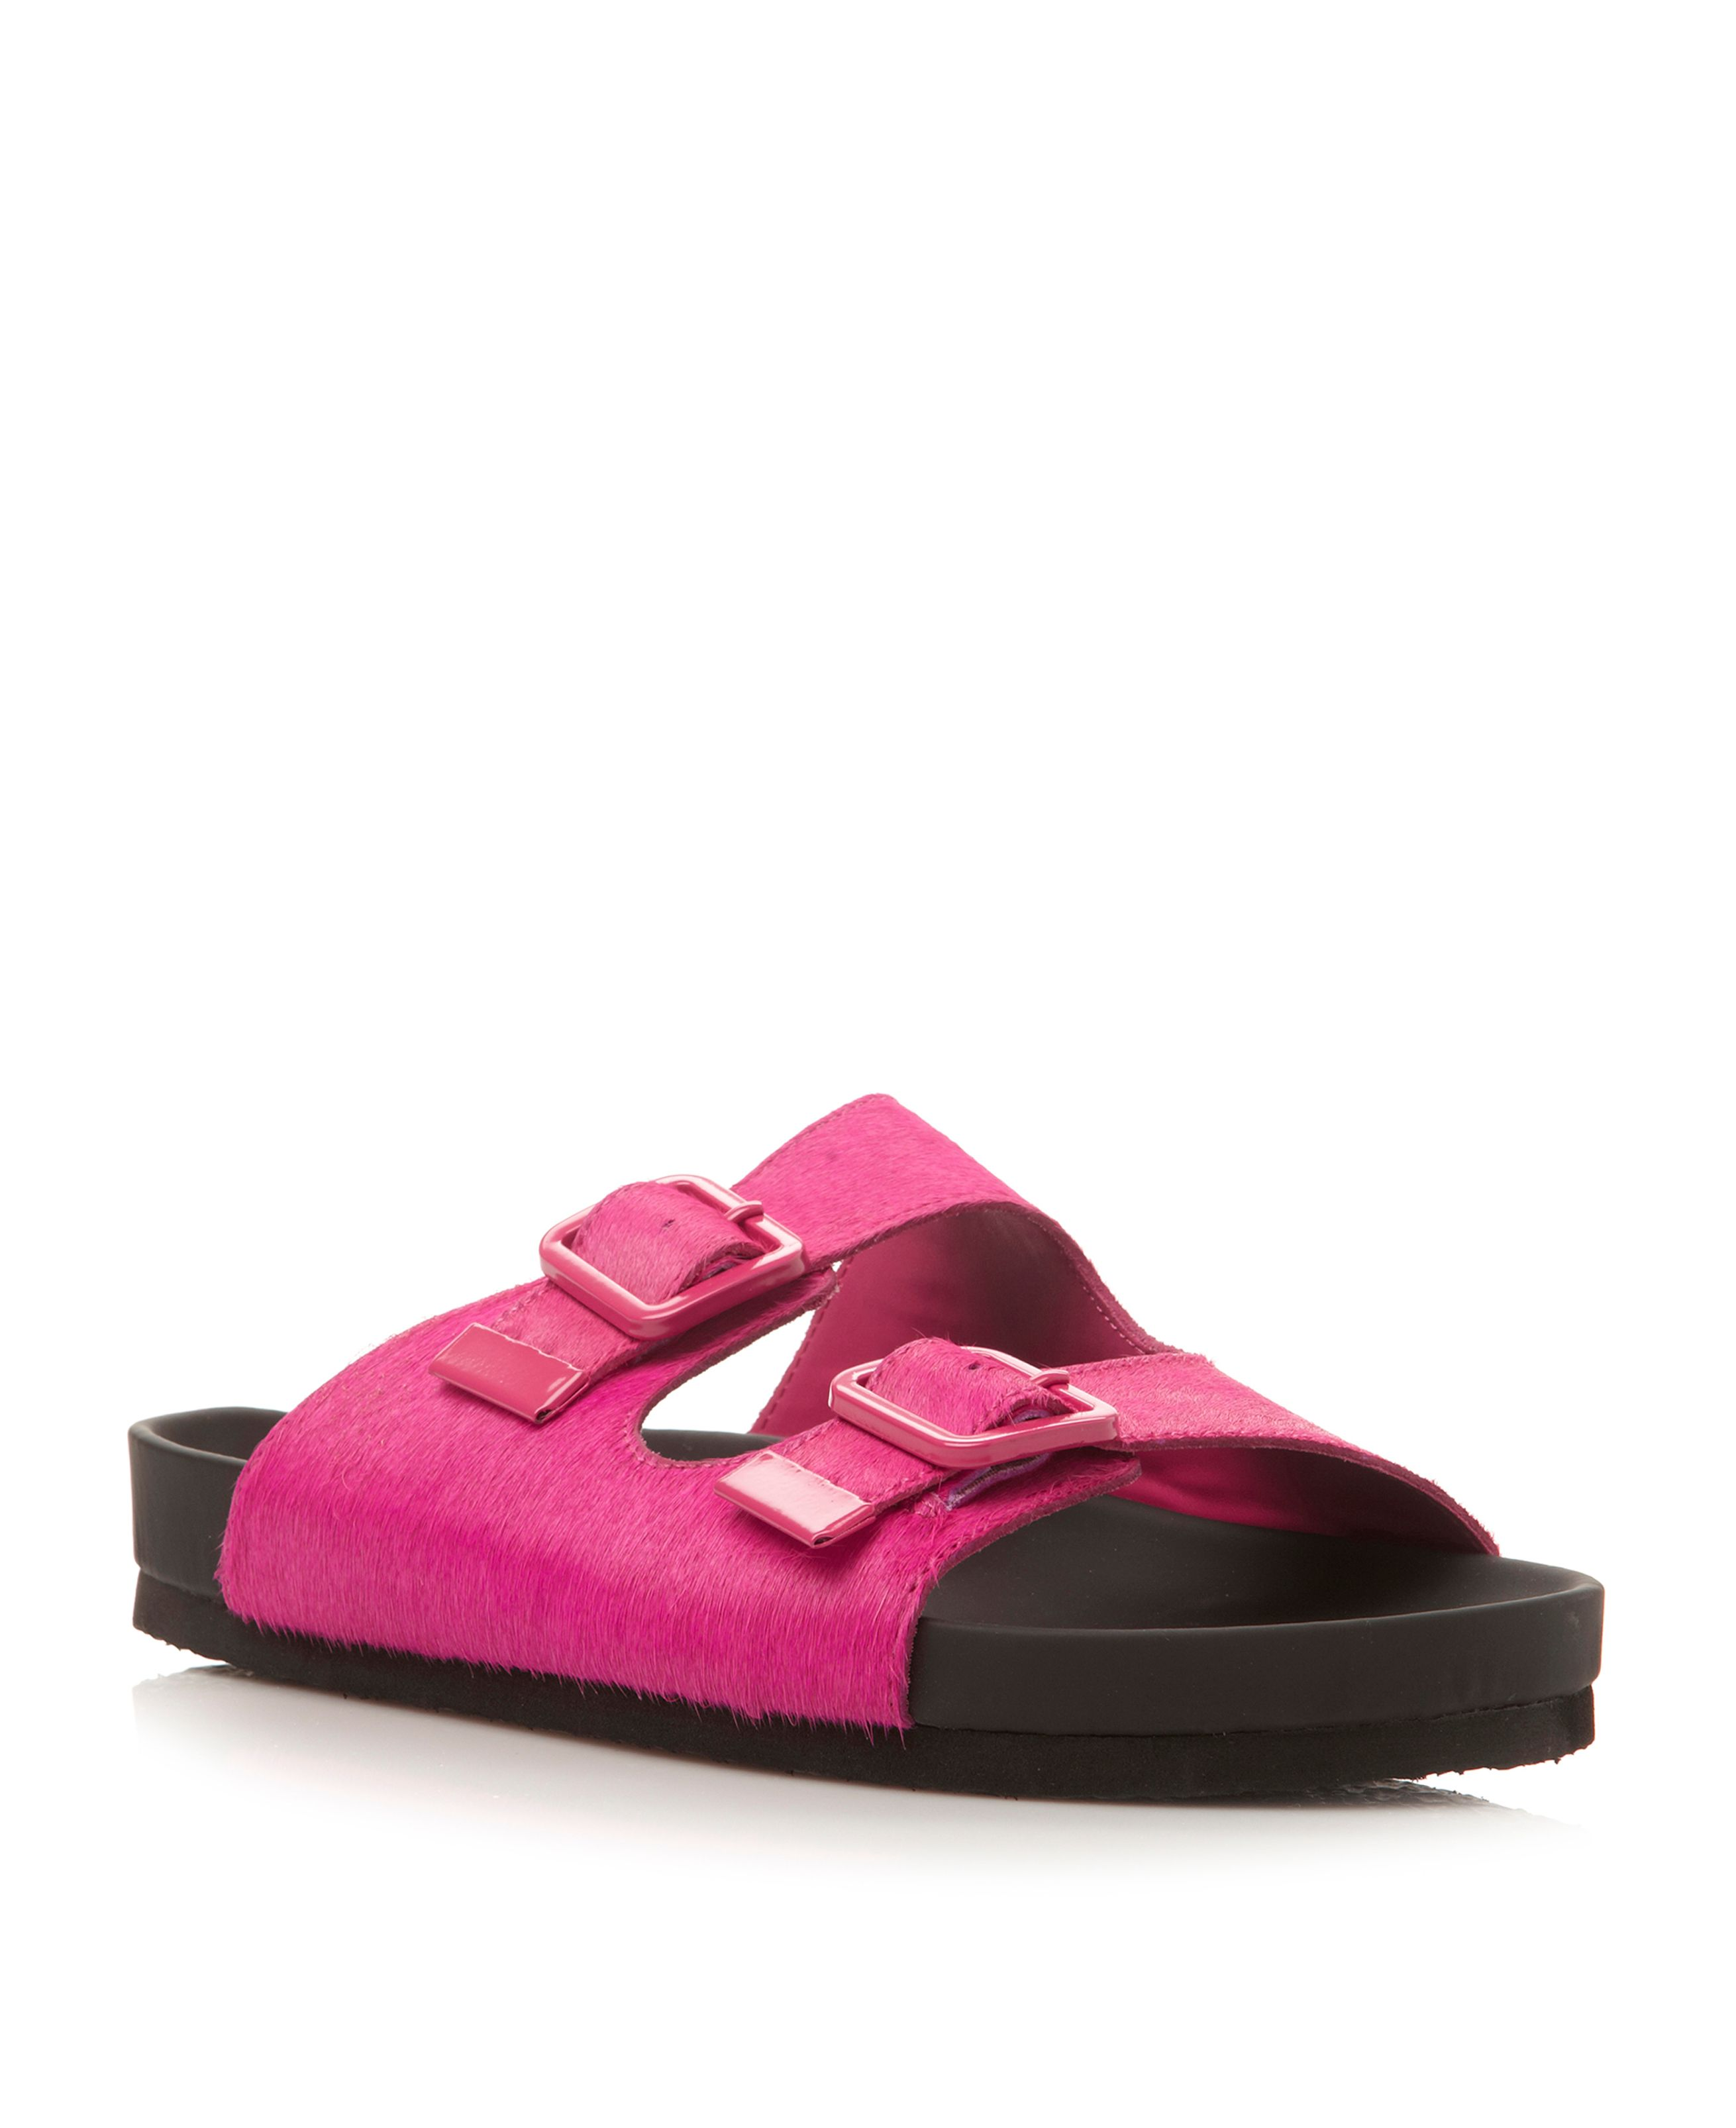 Boundree double strap mule sandals